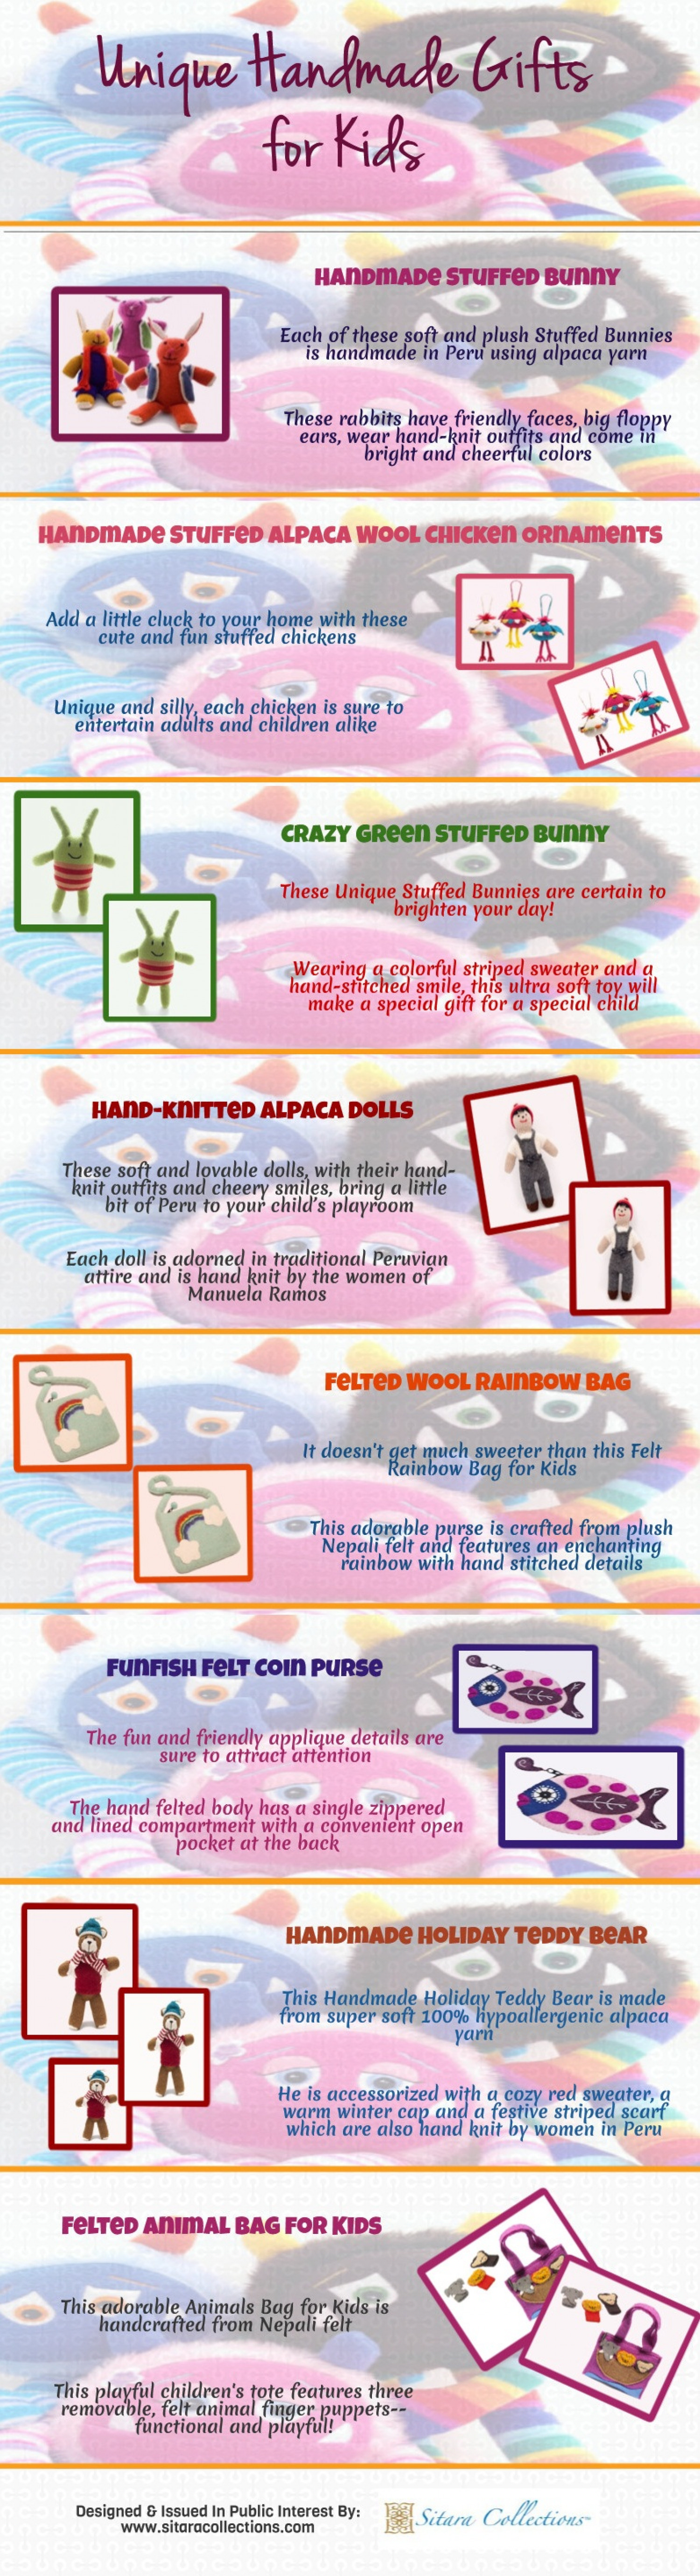 Unique Handmade Gifts for Kids Infographic